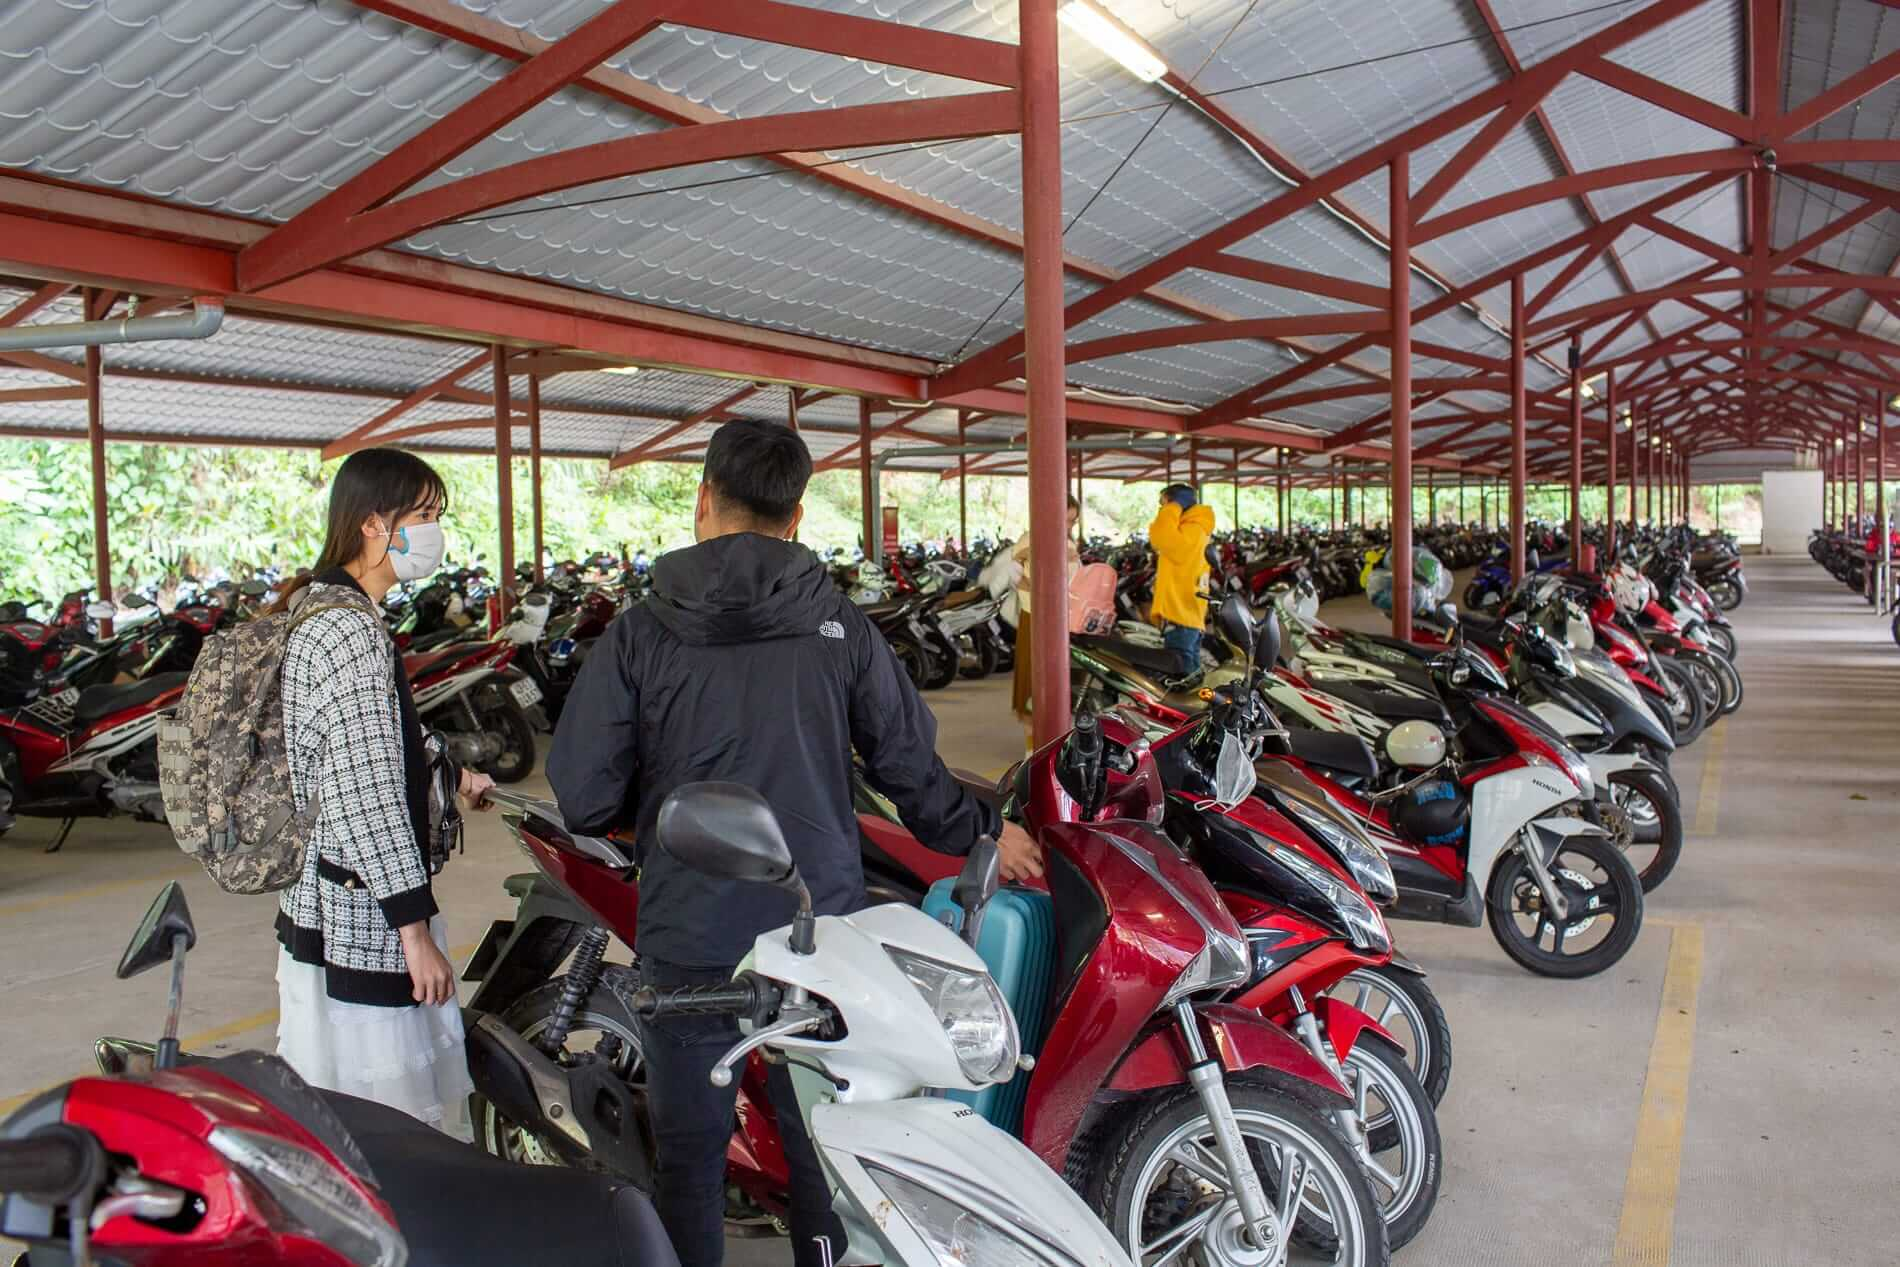 motorcycle parking available at the park